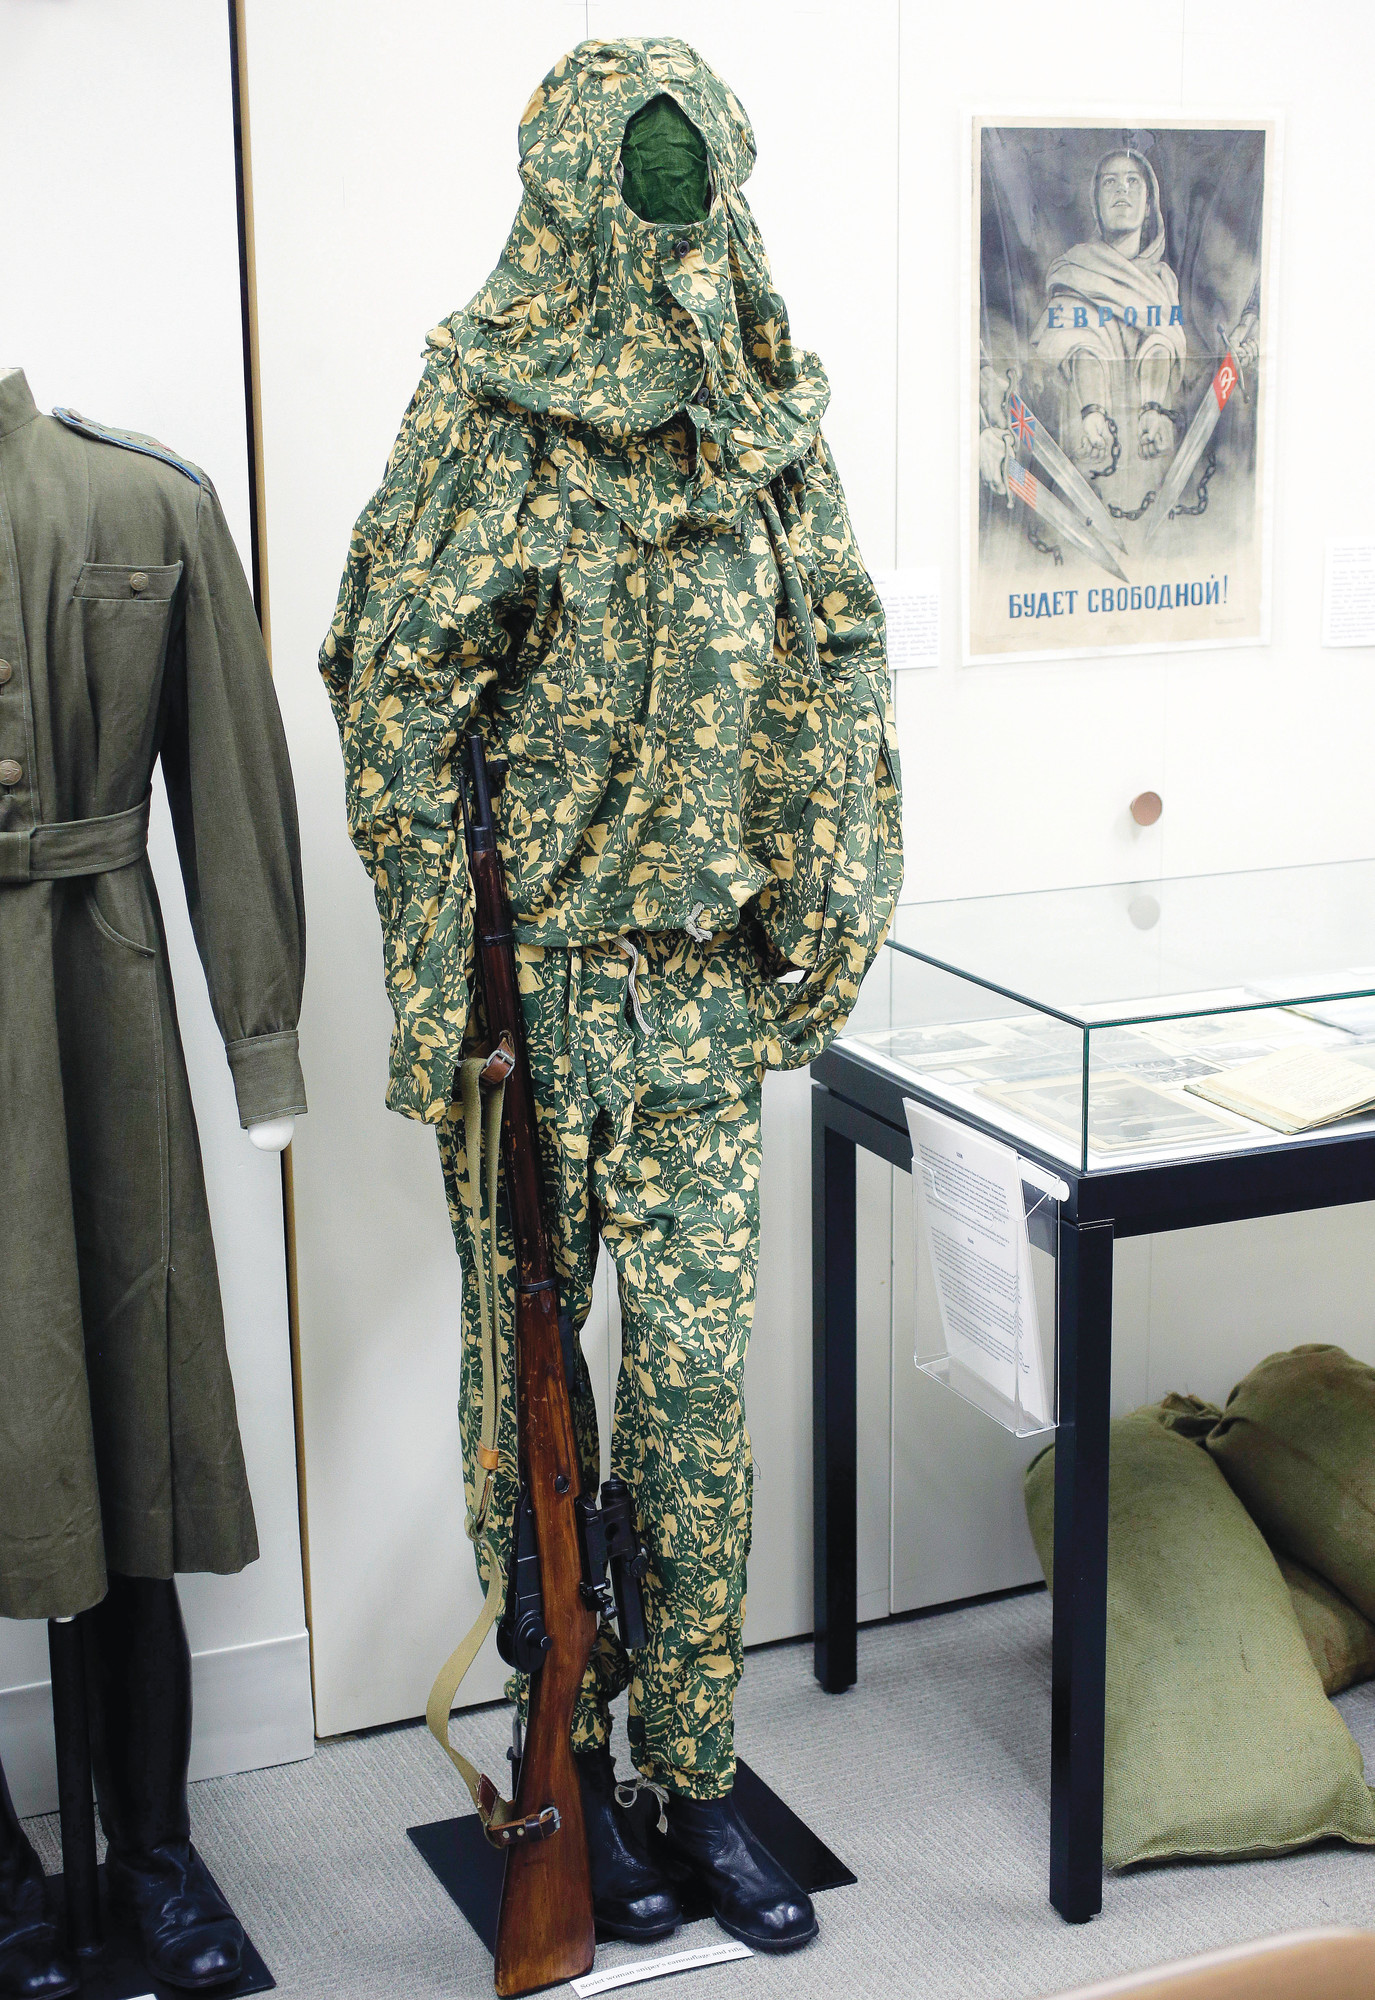 "A World War II Soviet women's camouflaged sniper uniform is displayed with a sniper rifle in an exhibit called ""Women in WWII: On the Home Fronts and the Battlefronts"" at The International Museum of World War II in Natick, Massachusetts."